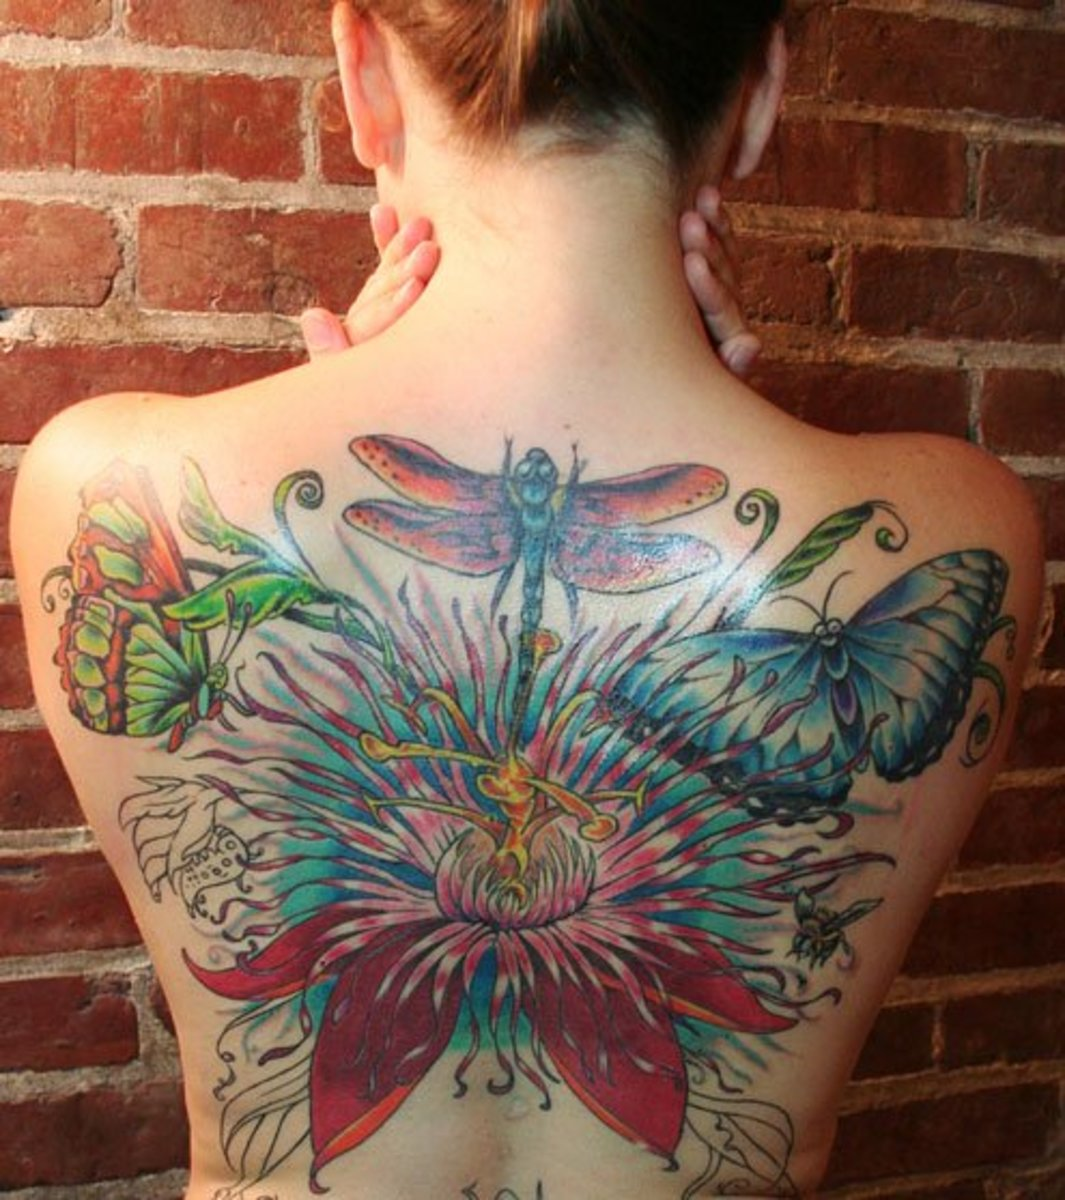 Butterfly Tattoos Are Becoming the Rage